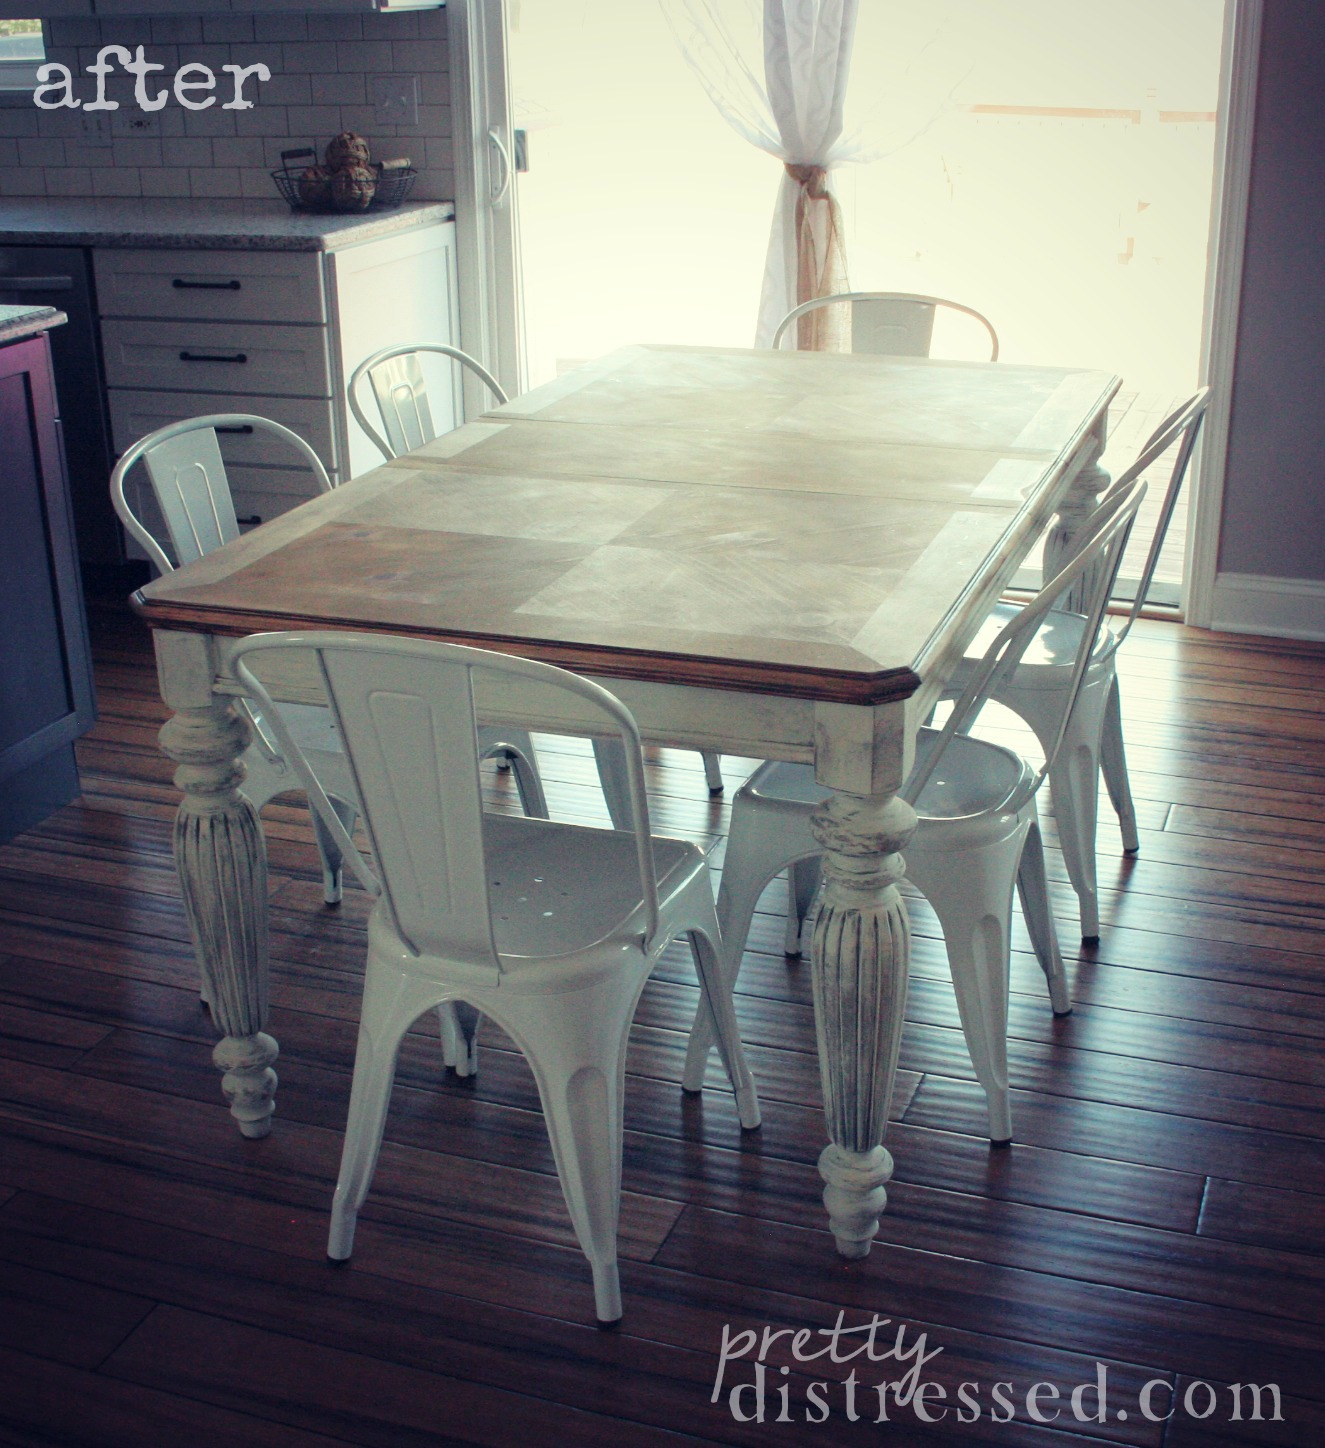 pretty distressed: the making of a farmhouse table